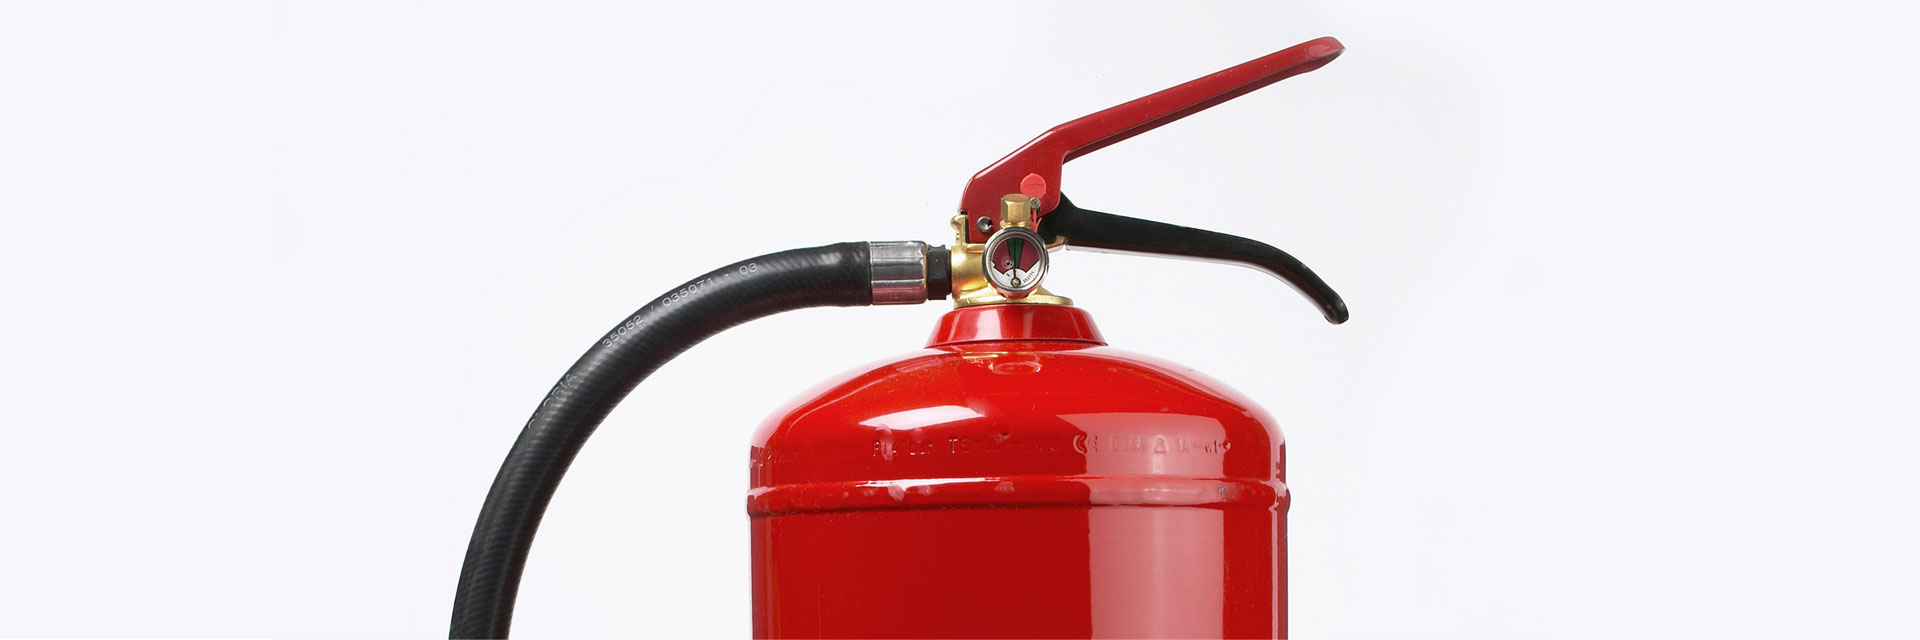 Extinguisher_close_up